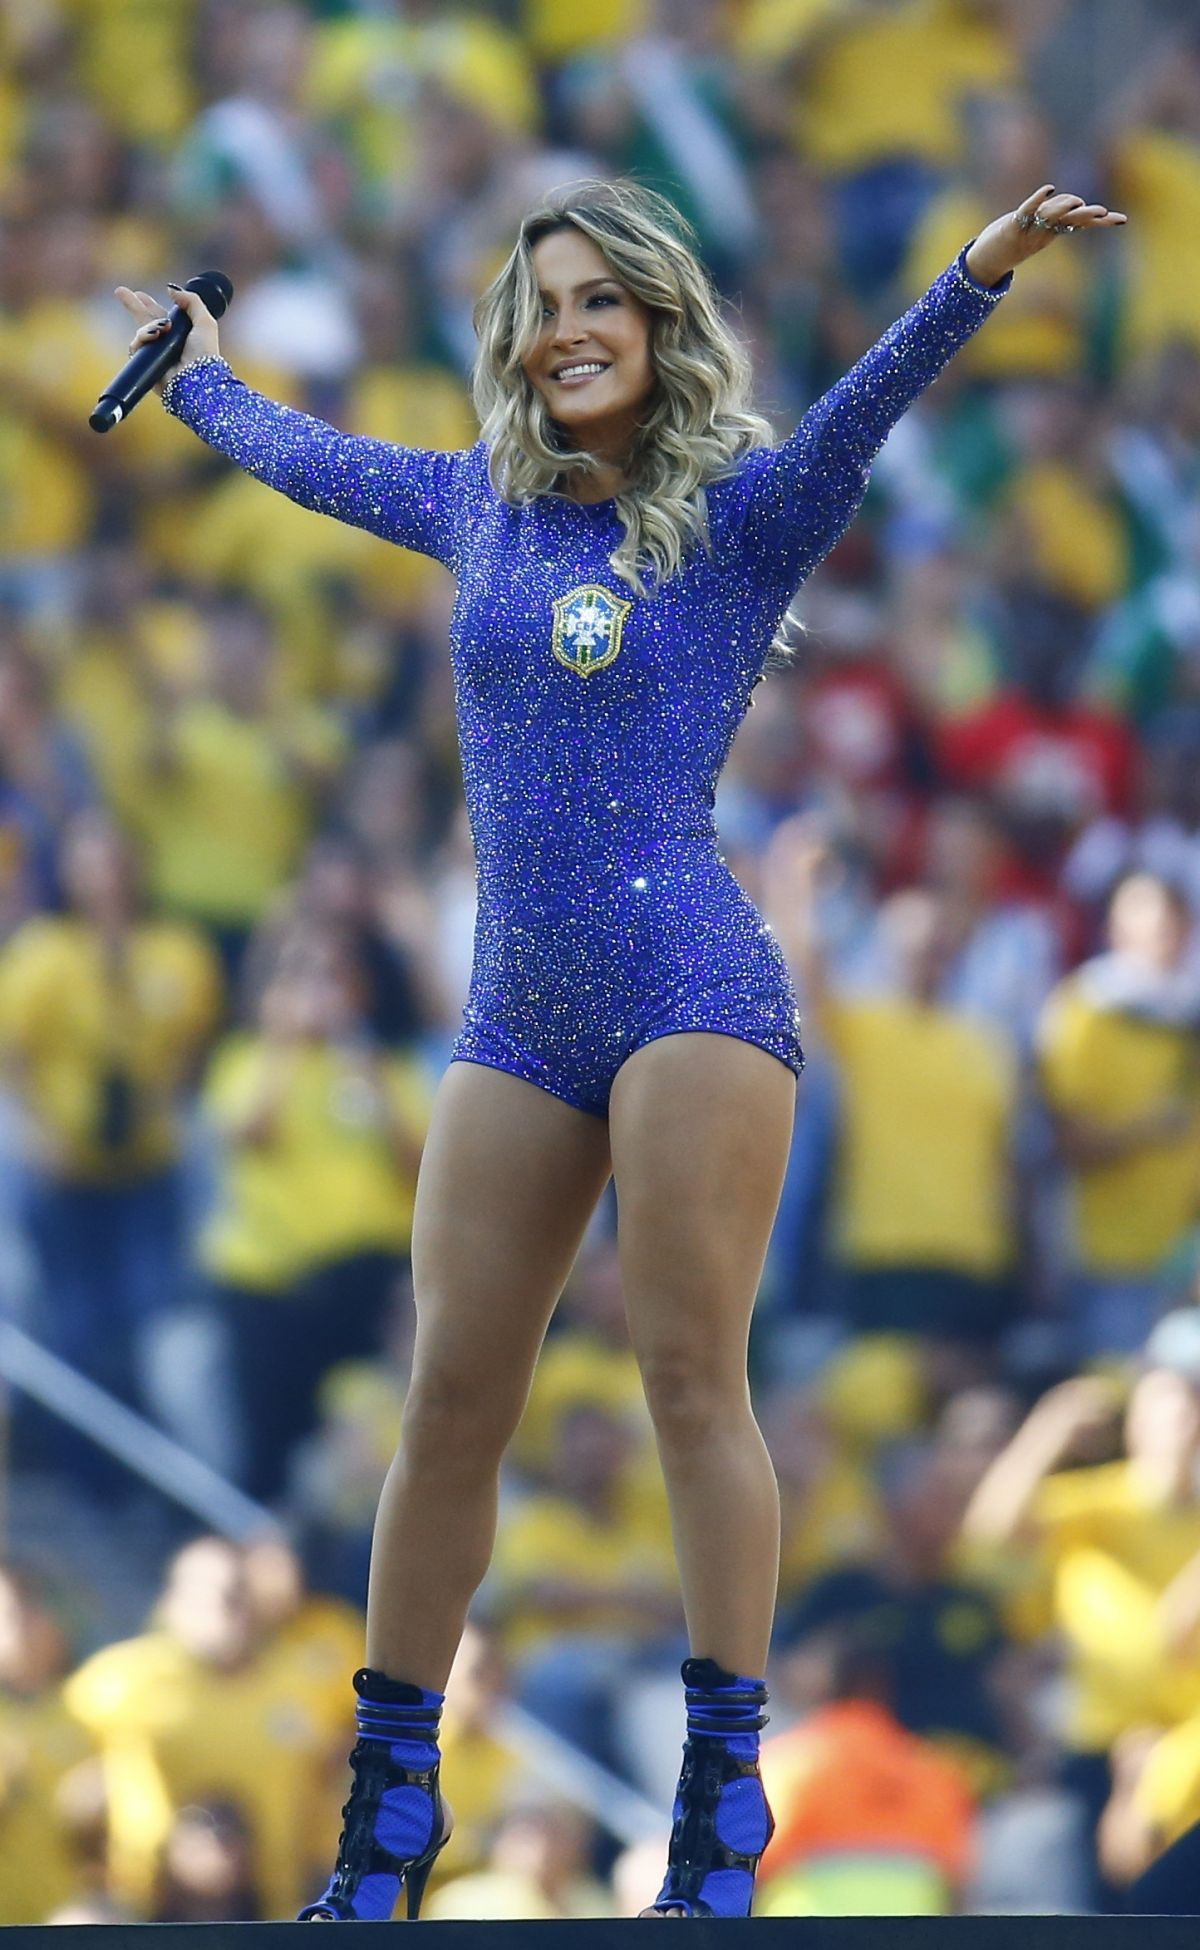 CLAUDIA LEITTE Performs at Fifa World Cup 2014 Opening Ceremony